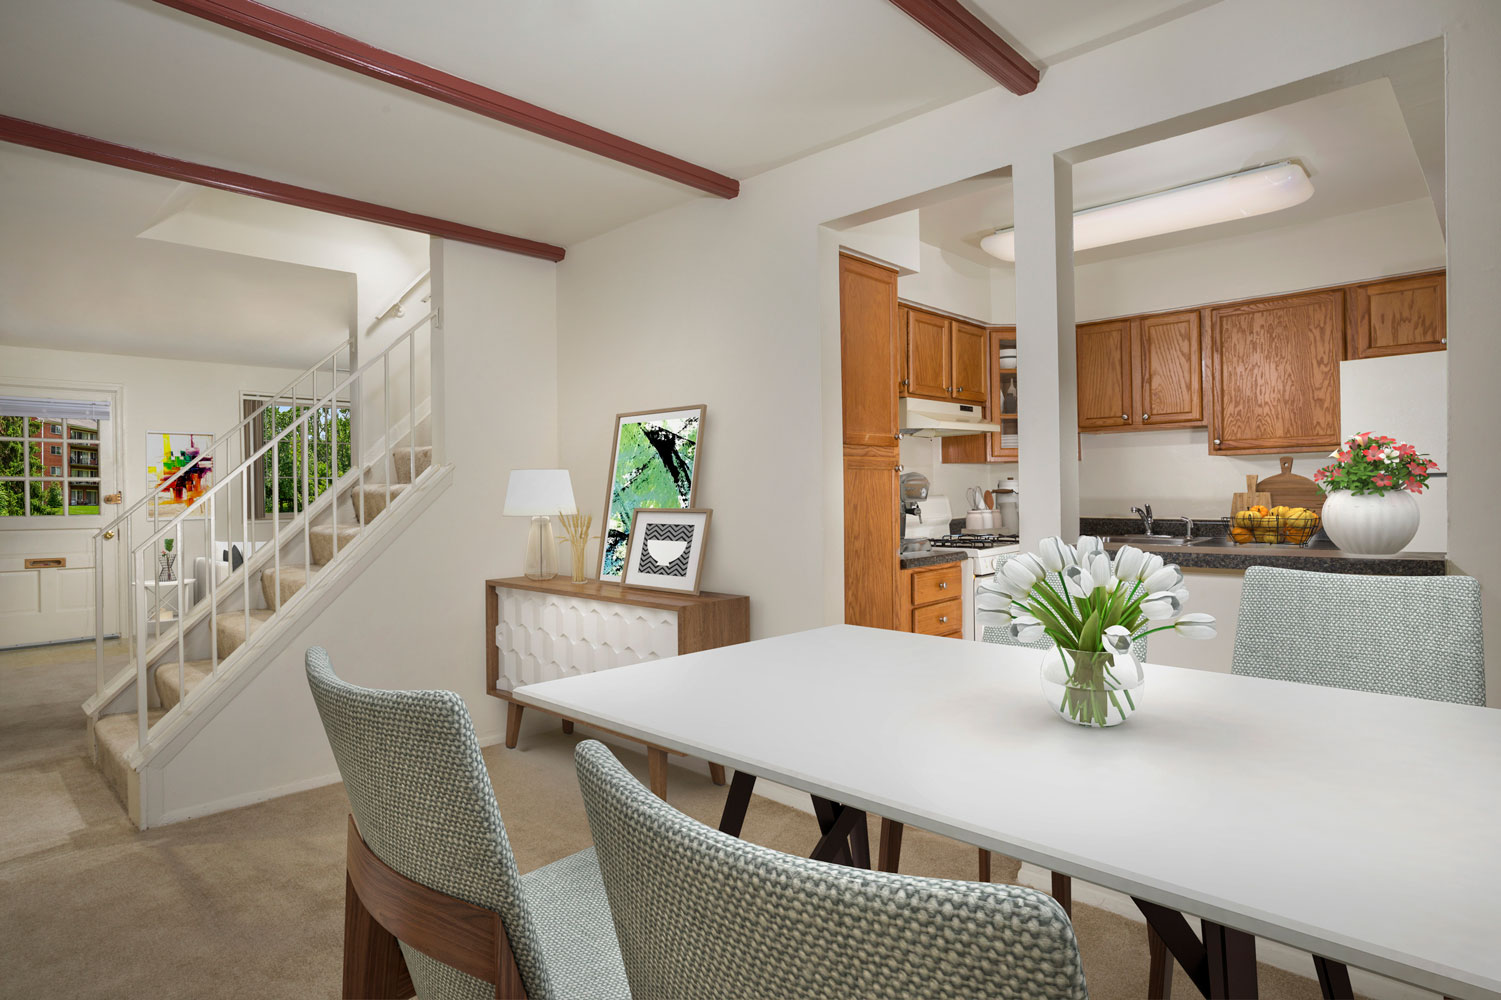 Spacious 2-story townhouse at Whitehall Square Apartments in Suitland, MD